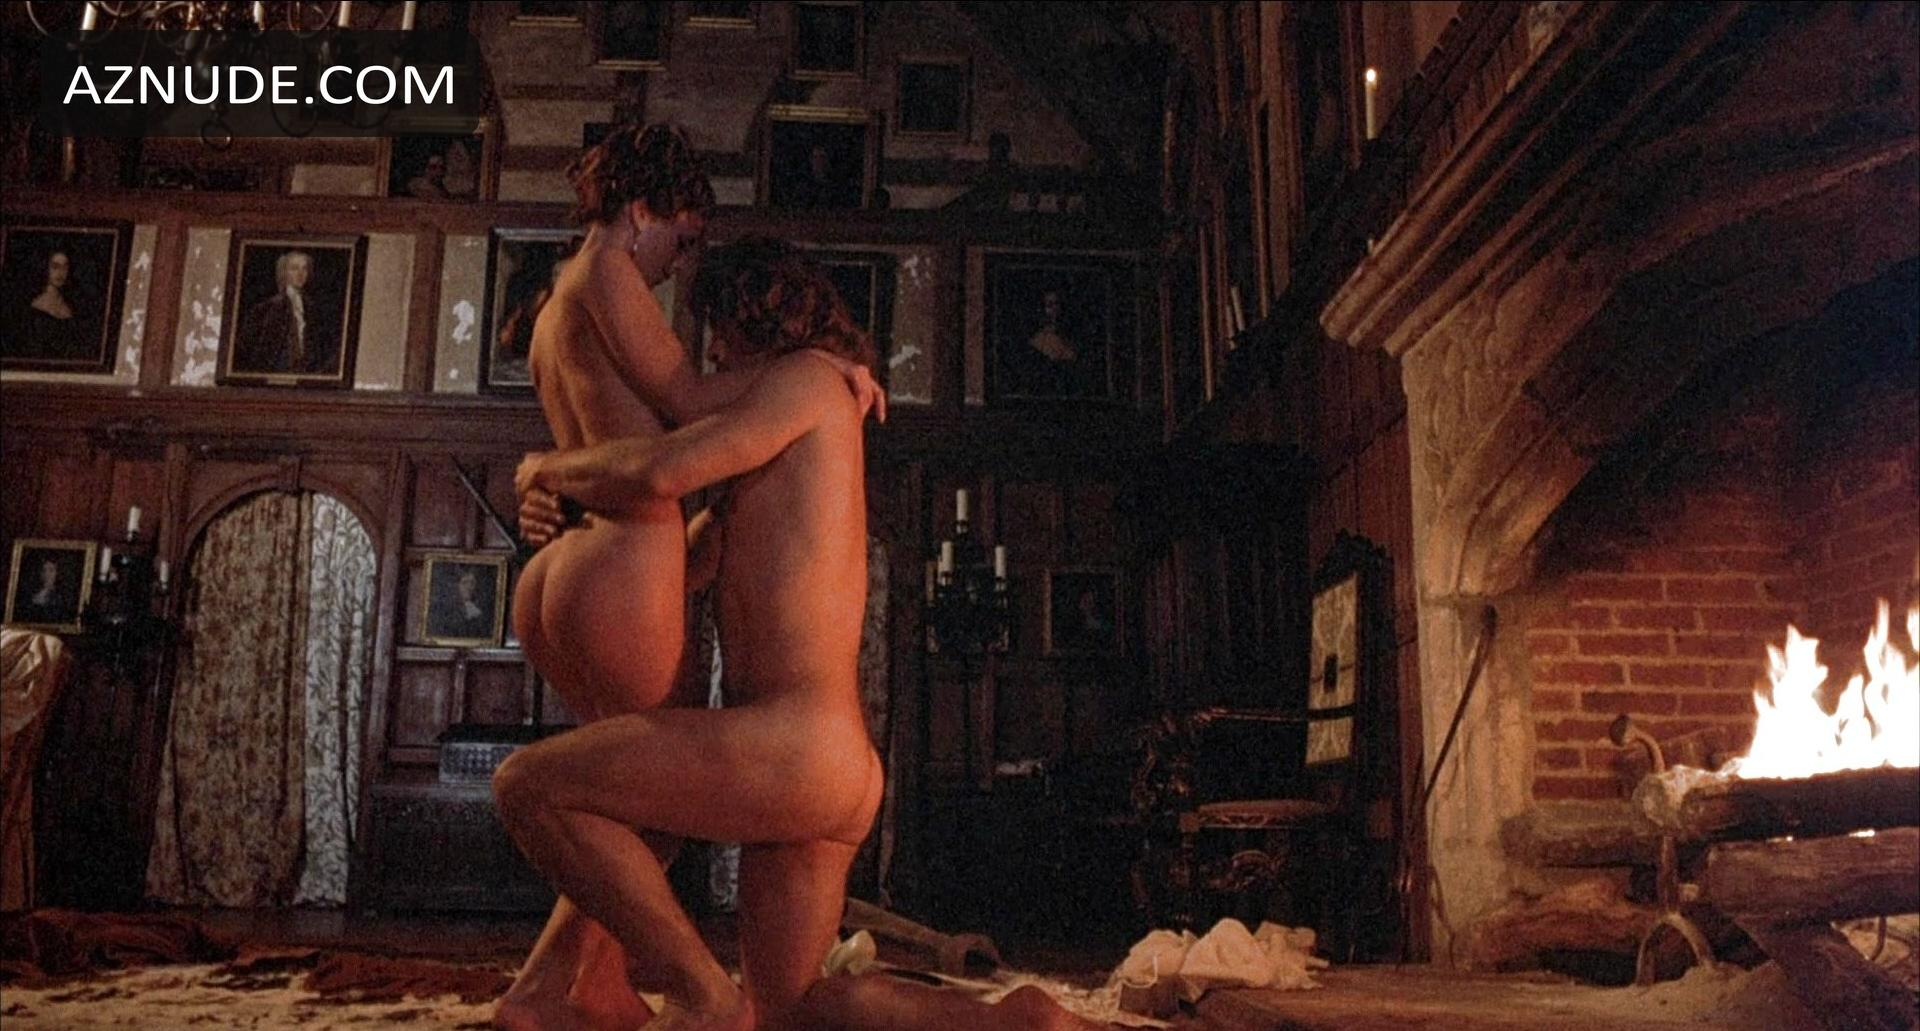 Barbara hershey nude the entity - 3 part 7